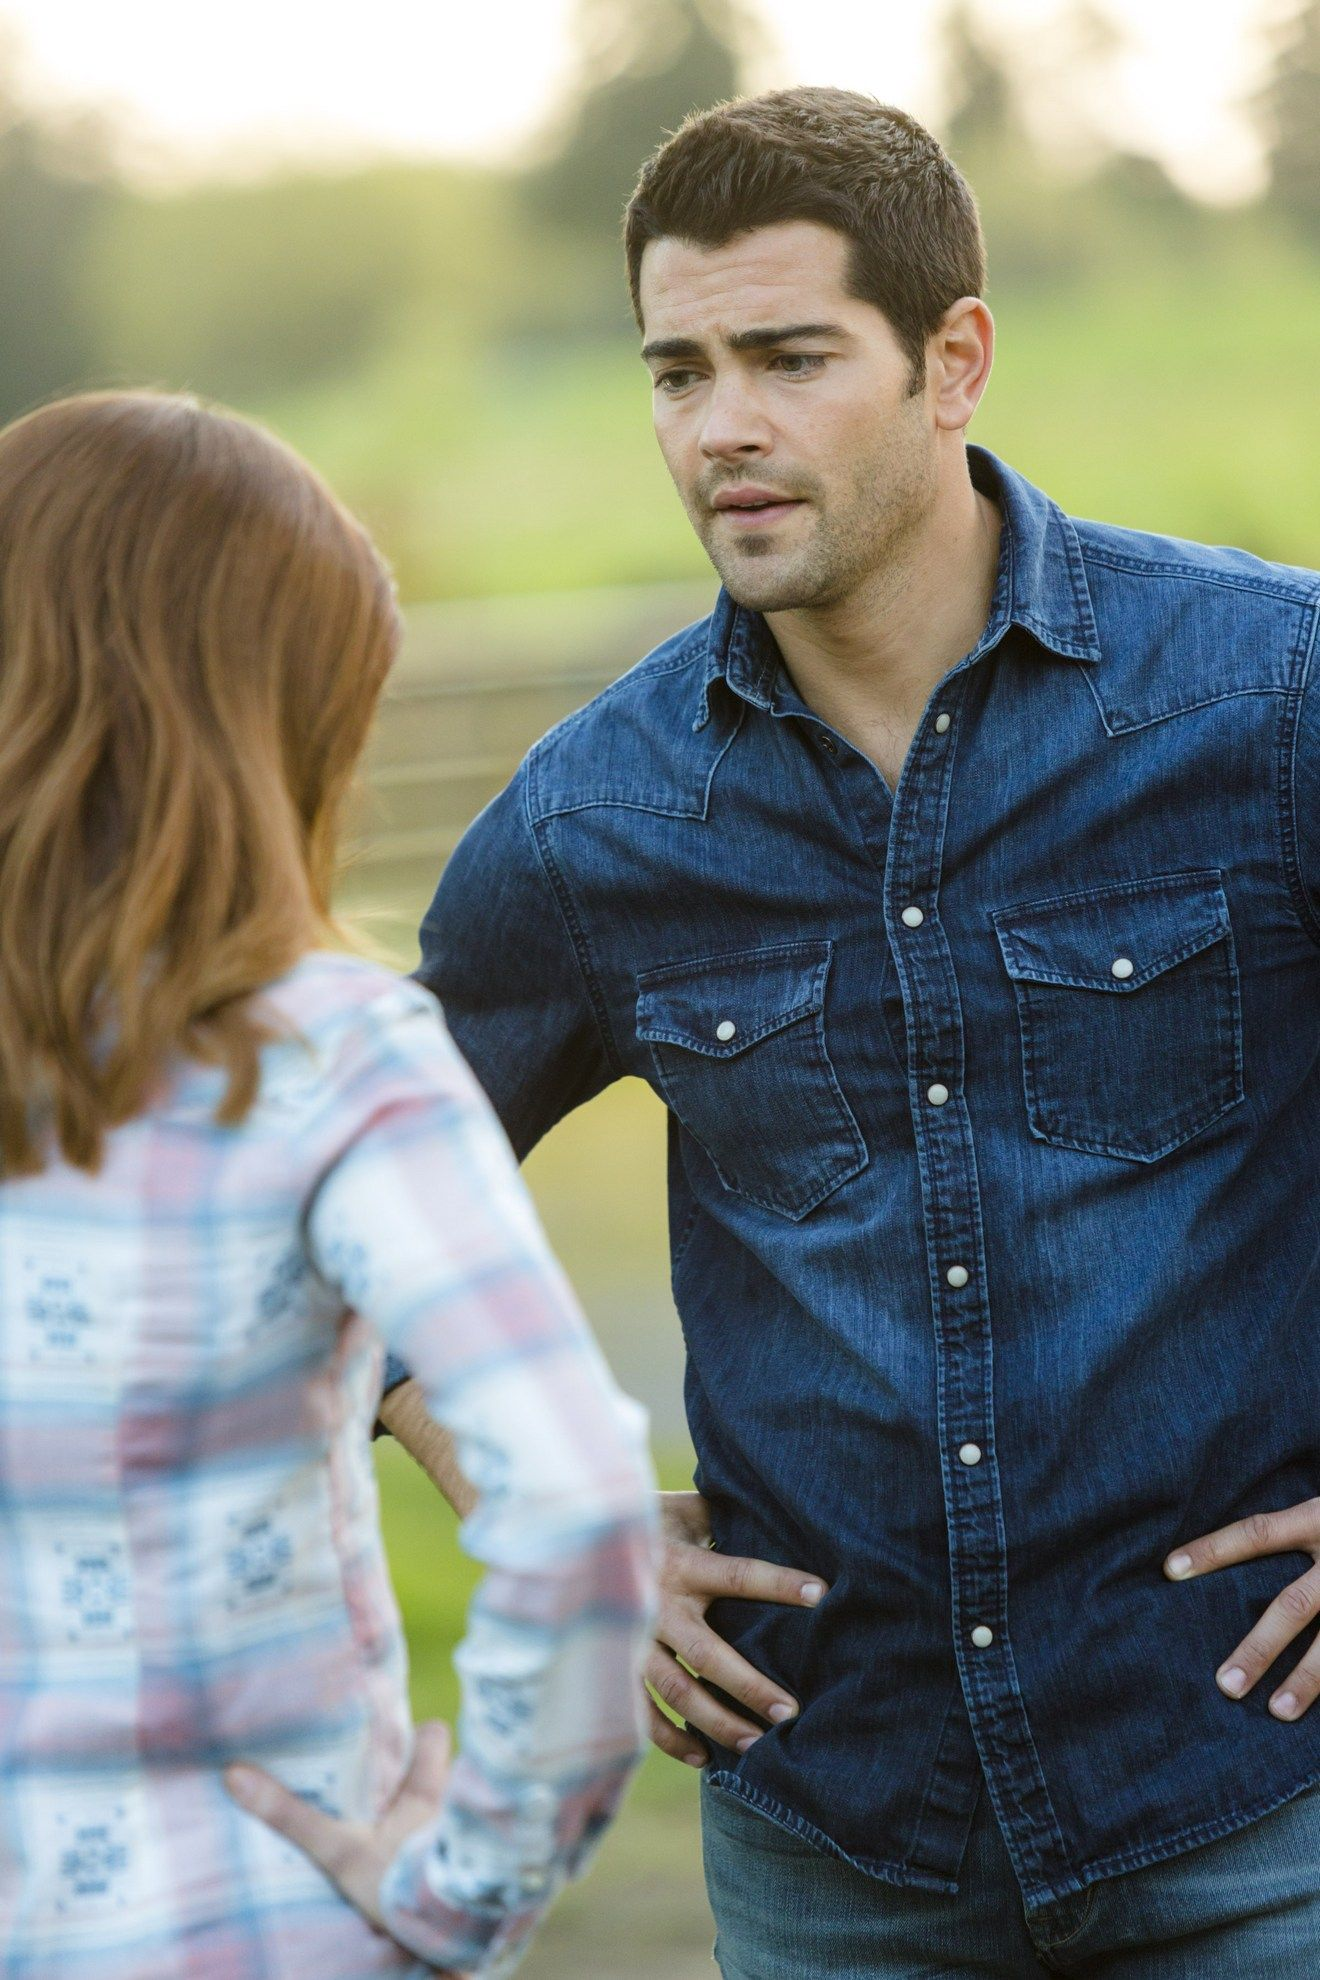 A Country Wedding Stills Stills 035 Jesse Metcalfe Photo Gallery Jesse Metcalfe Pictures Wedding Stills Christian Movies Hallmark Movies